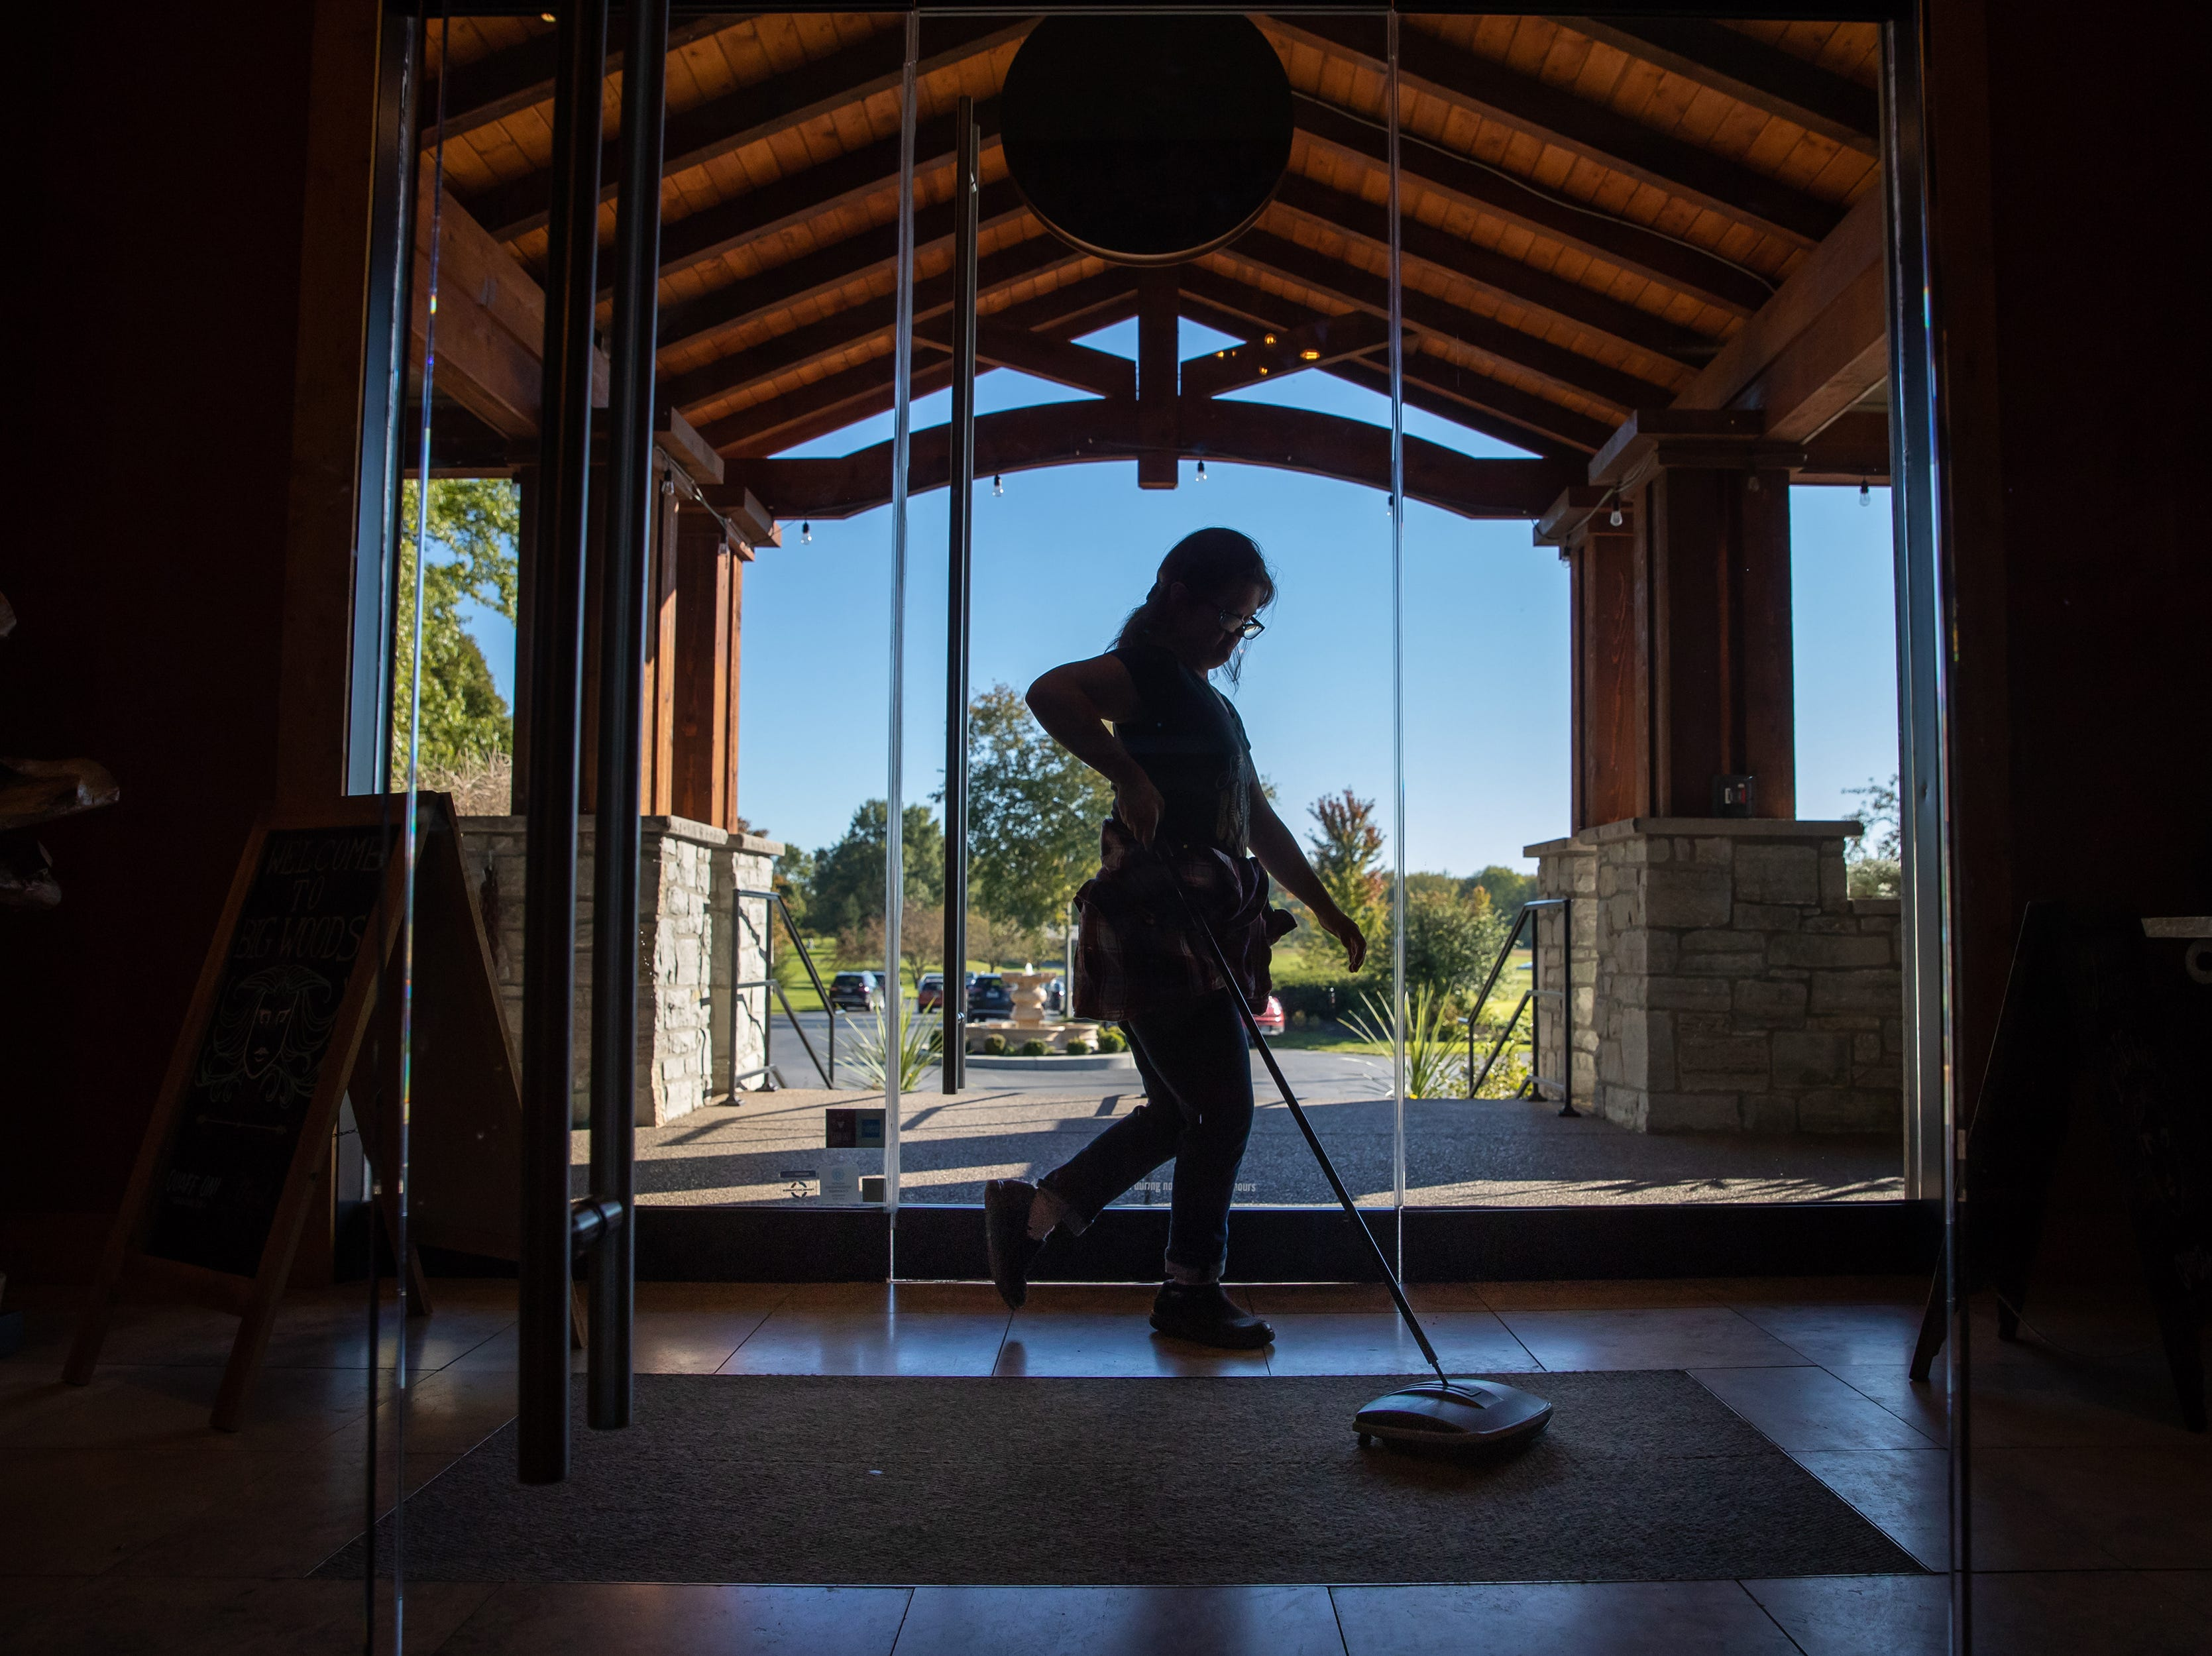 While dancing to music heard at the restaurant, Mickey sweeps the floors while on shift at Big Woods in Franklin, Ind., on Thursday, Oct. 18, 2018.